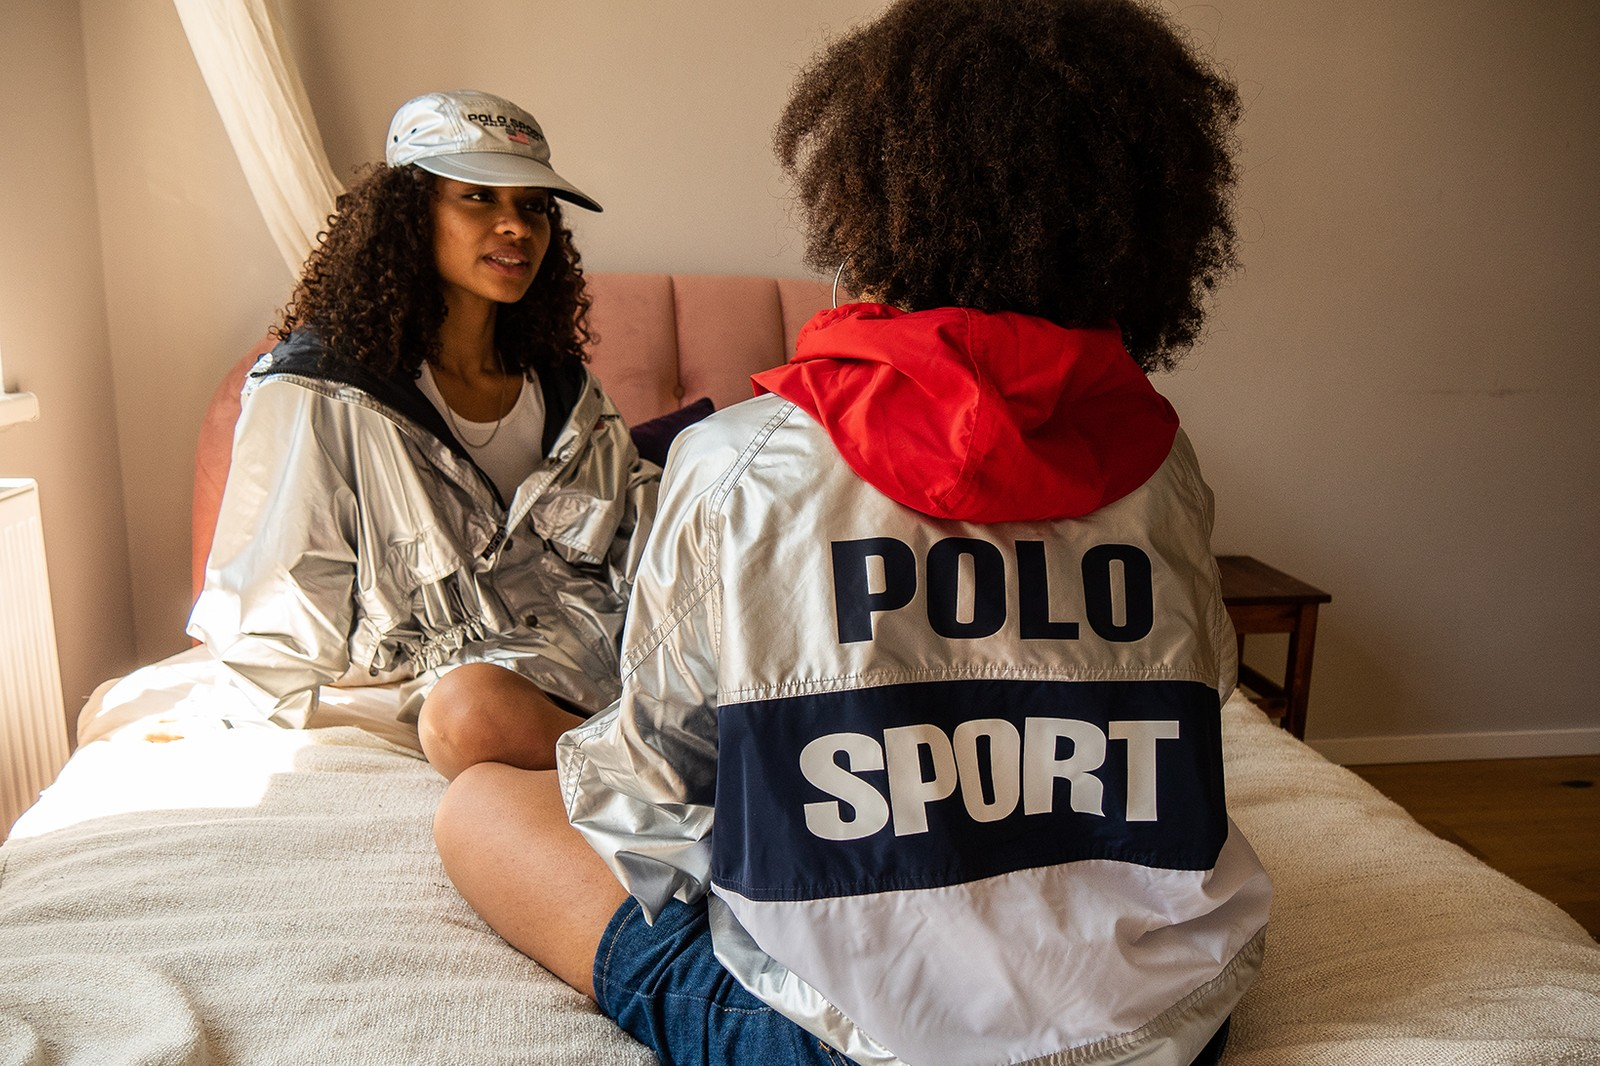 Ralph Lauren Reissue Limited Polo Sport Capsule Rapper Poet Polo Ralph Lauren Denim Soko the Cat Deemz DJ Stussy Berlin Amsterdam Paris